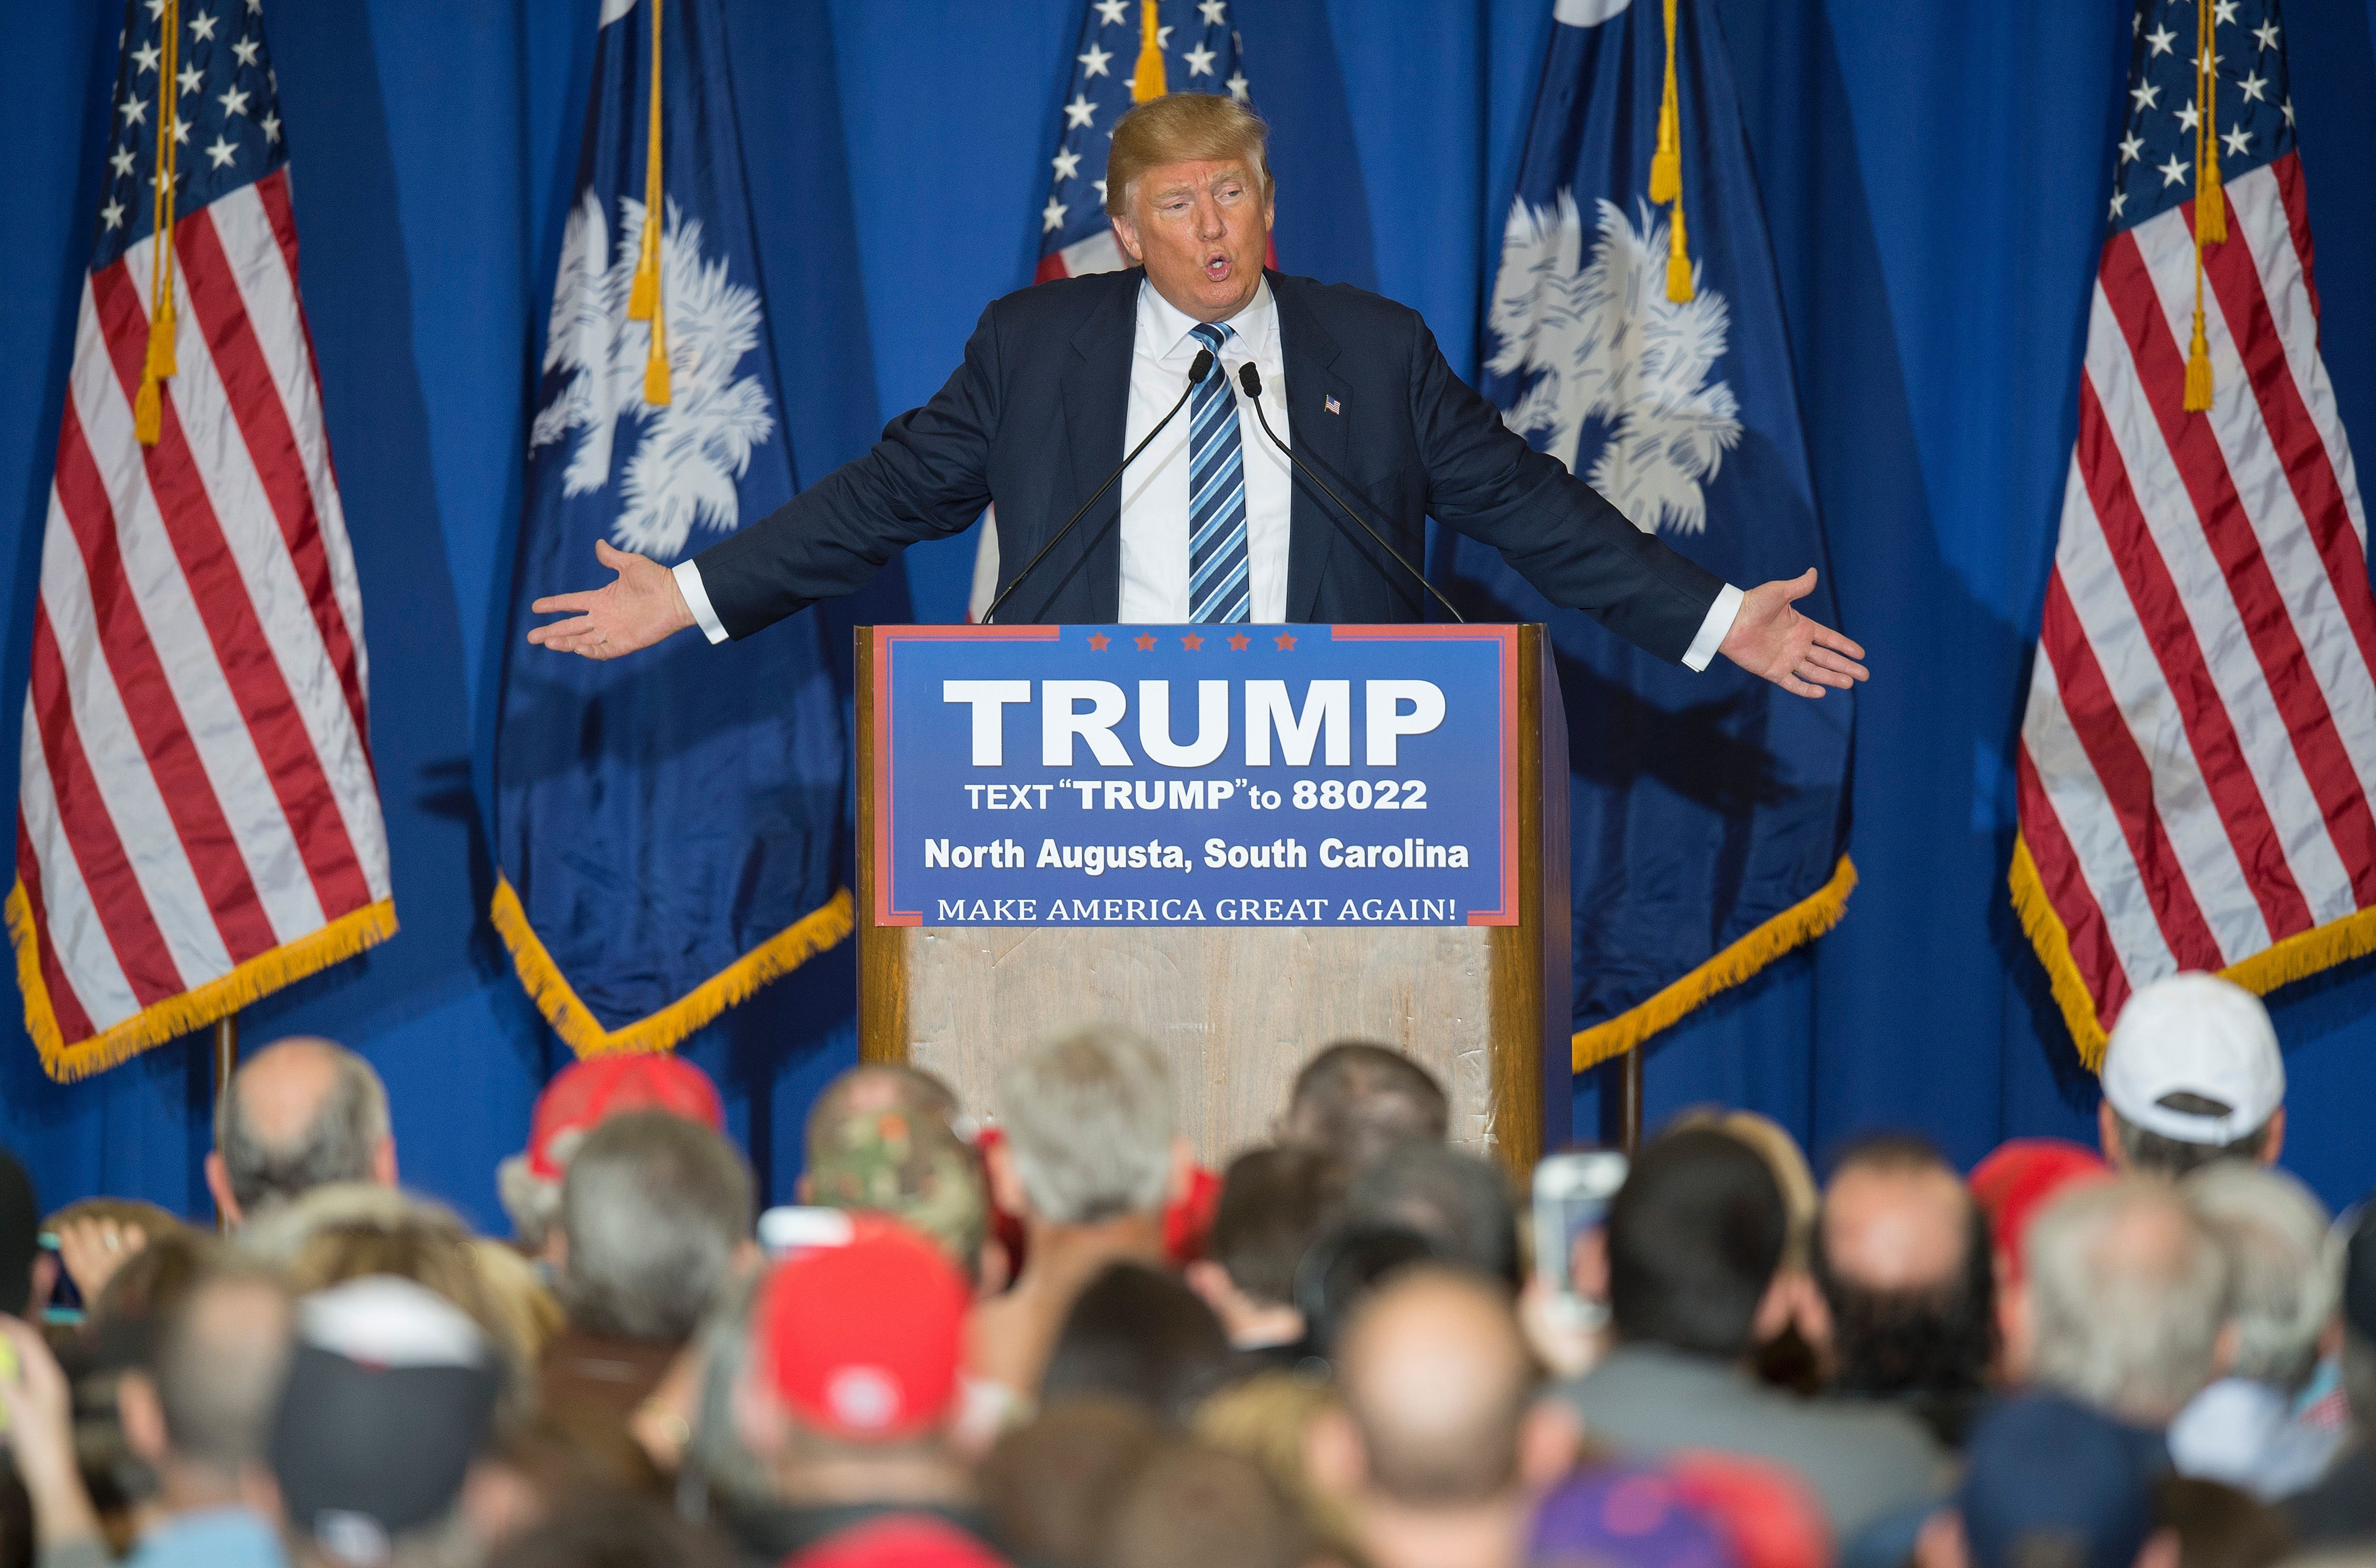 Donald Trump remains the GOP front-runner in South Carolina.